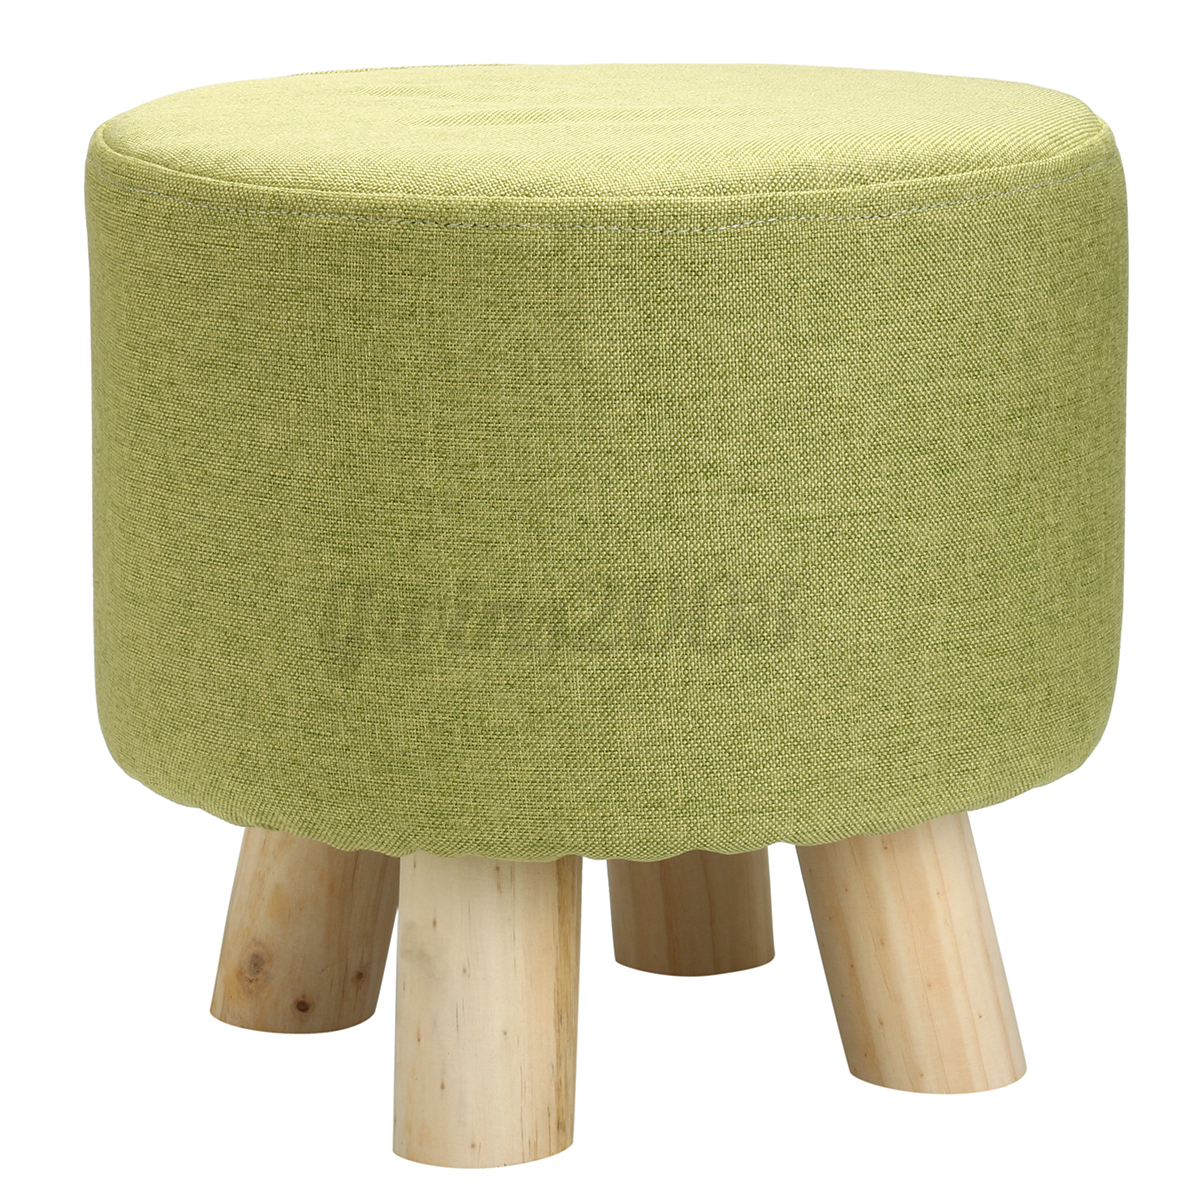 Footstool Small Round Wood Pouffe Chair Ottoman Foot Stool